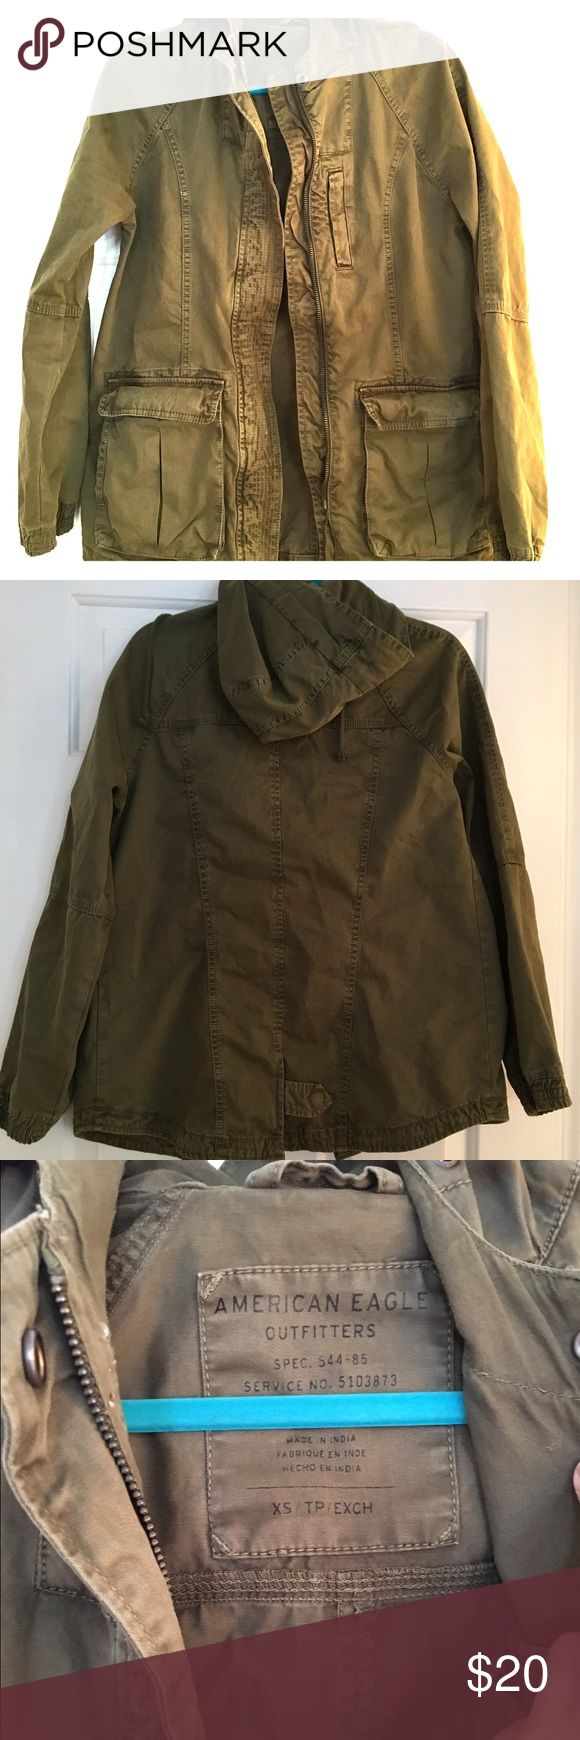 American Eagle Olive Green Military Jacket If you don't have a green military jacket in your wardrobe, you need one! It goes with EVERYTHING! It's the most perfect layer for cold spring nights. This one is particularly cute in my opinion because of the seamed detailing along the front :) . Unlined roomy XS; could also fit someone on the smaller end of small. American Eagle Outfitters Jackets & Coats